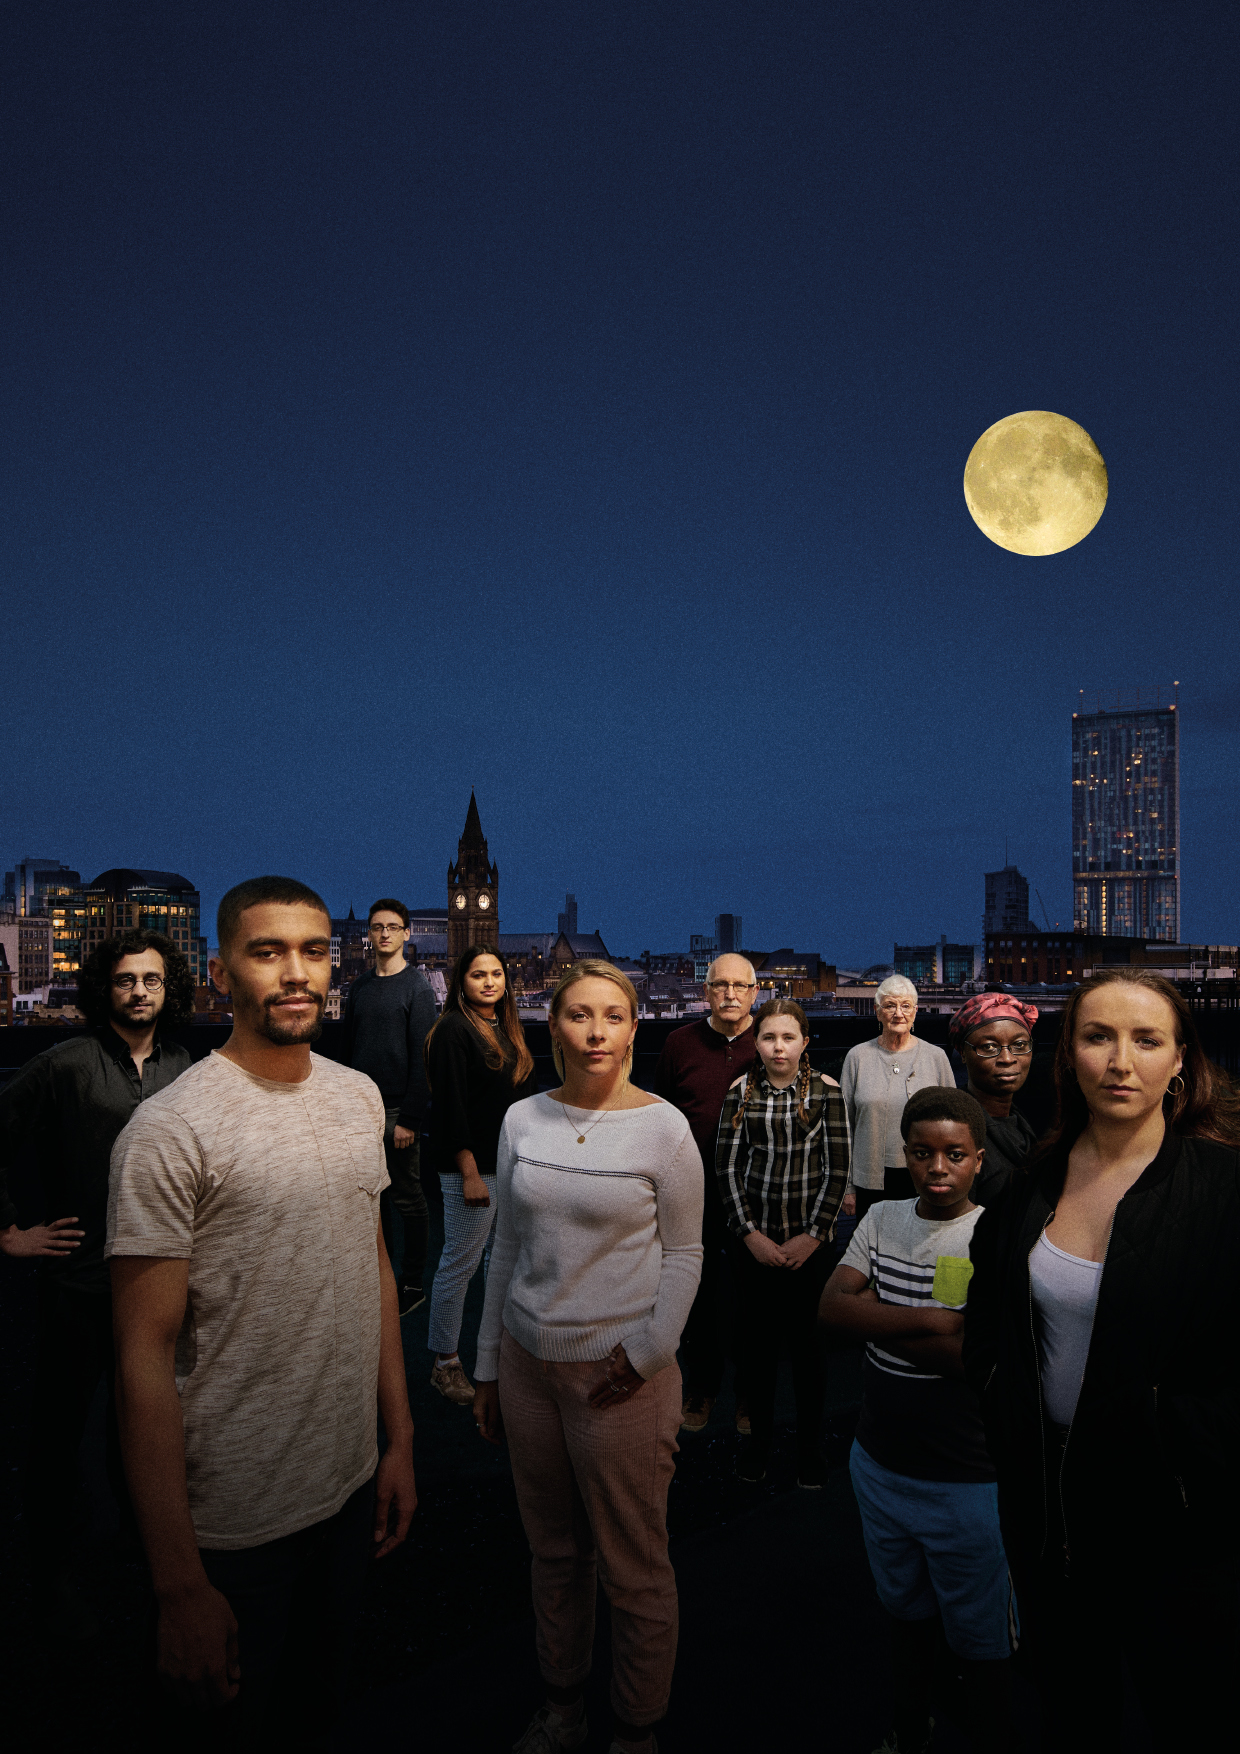 '  OUR TOWN  ' (14th Sep - 14th Oct '17) at    The Royal Exchange  //  Photo credit:   Stephen King  - courtesy of  The Royal Exchange .